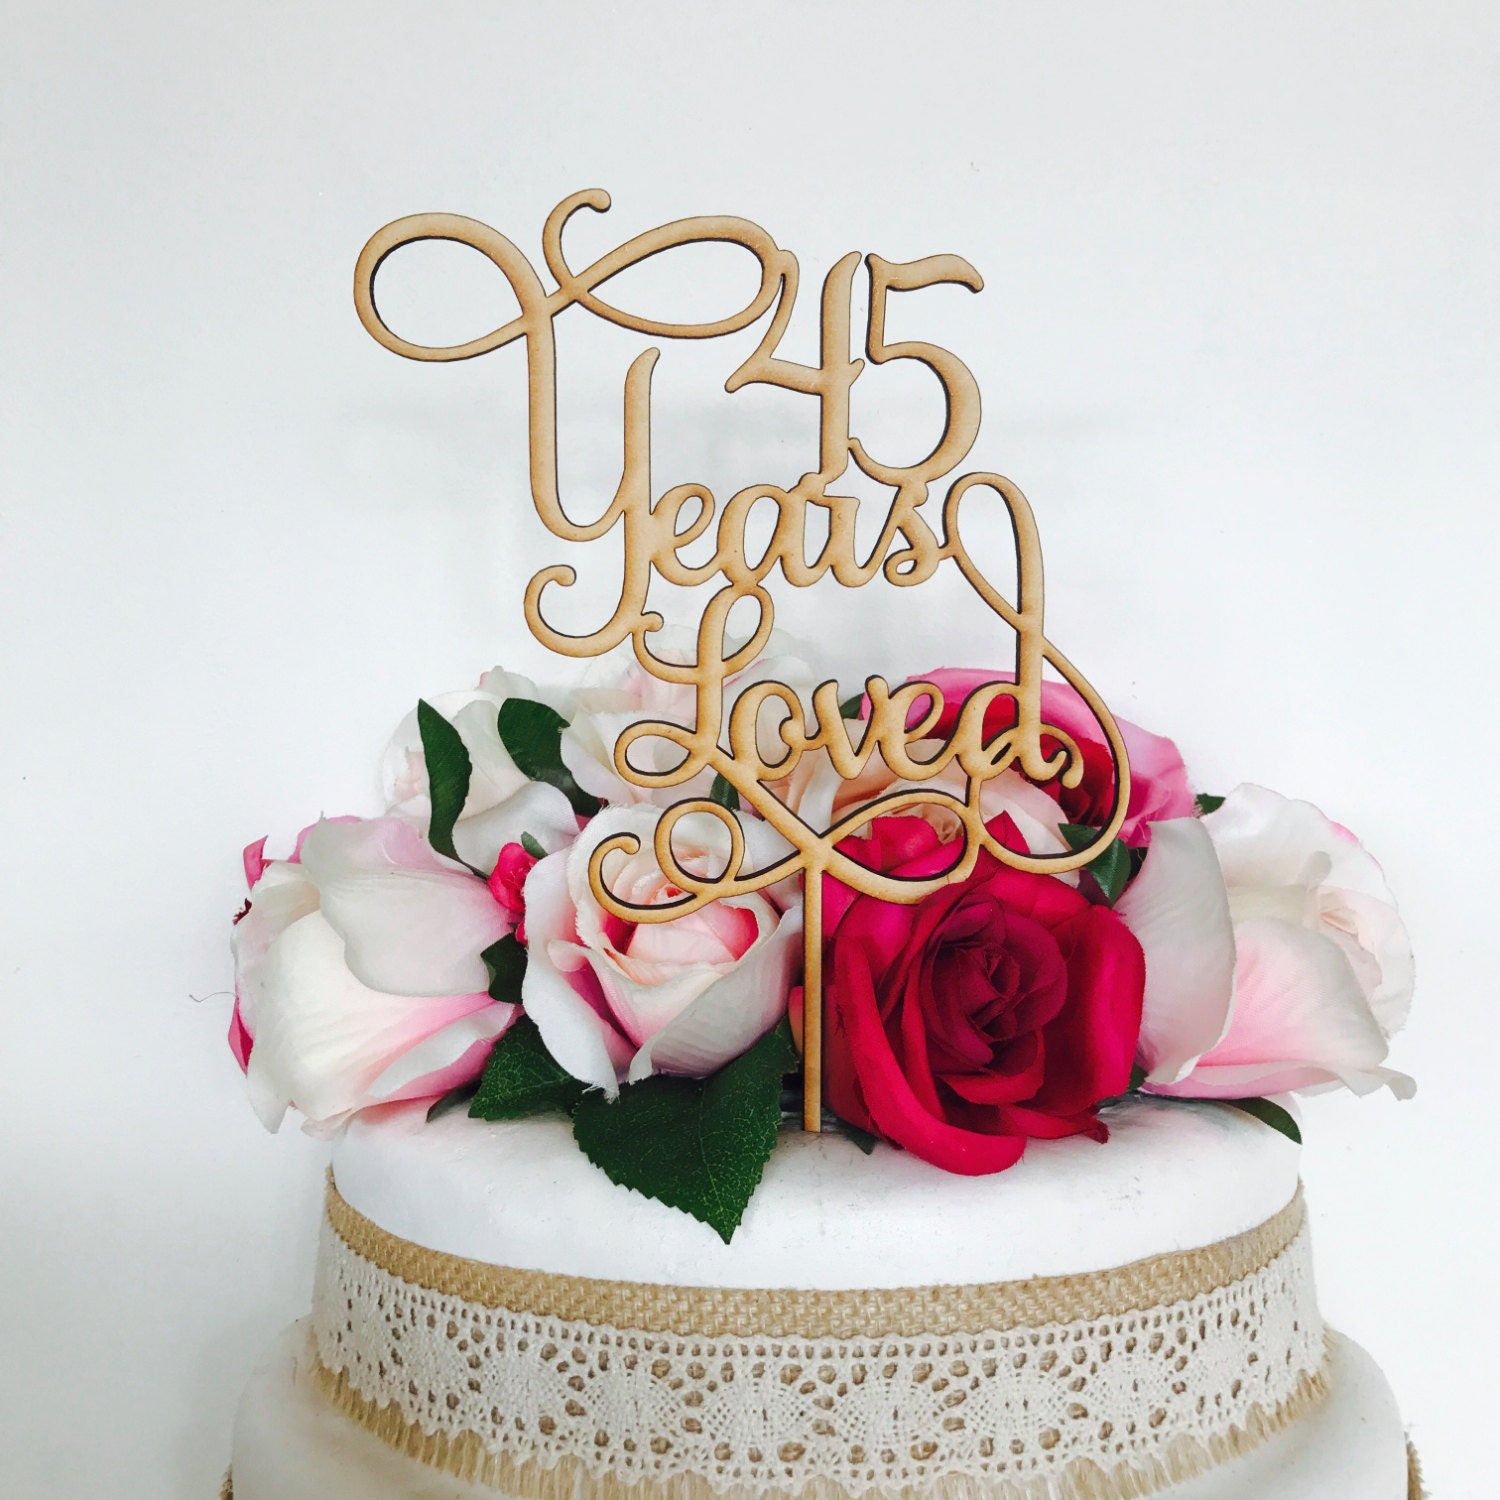 45 Years Loved Cake Topper Anniversary Decoration